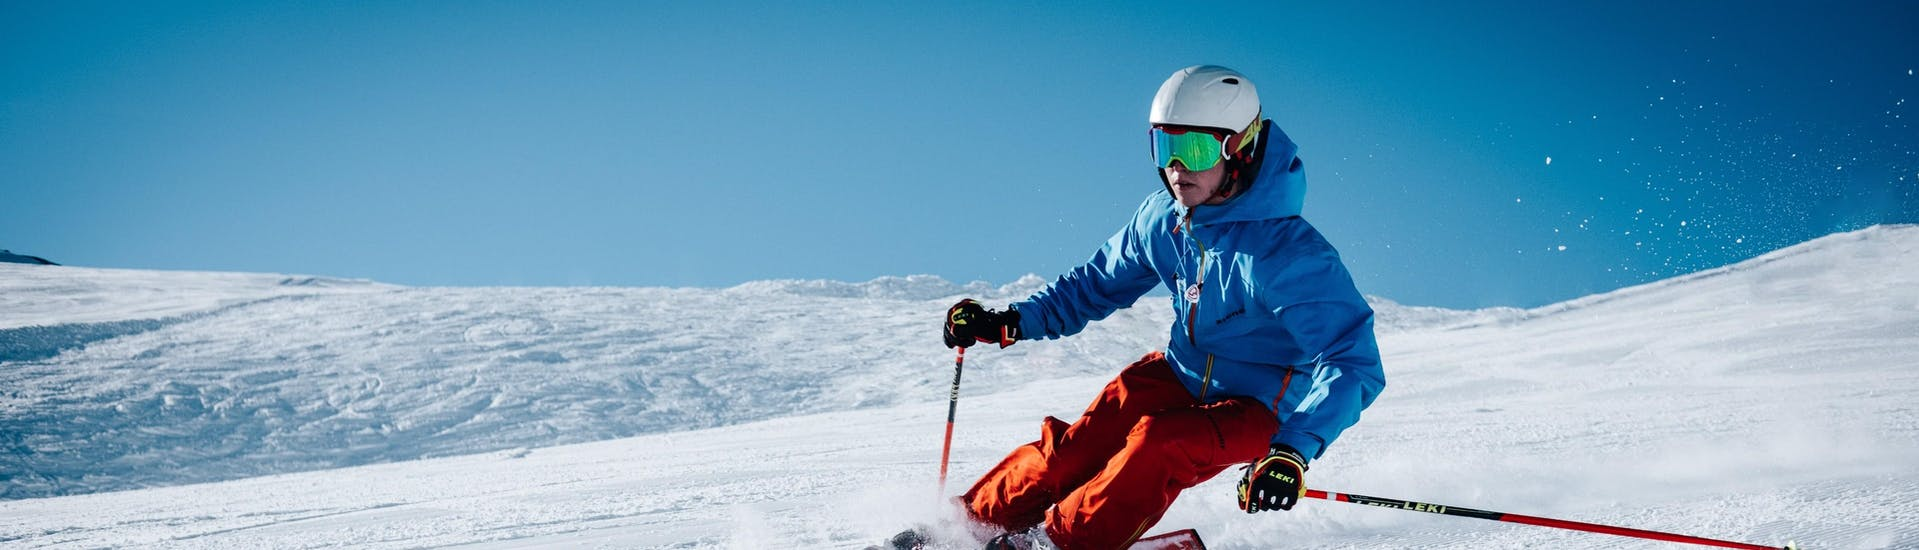 A skier is skiing down a slope with confidence thanks to his Private Ski Lessons for Adults - All Levels with the swiss ski school Charmey.